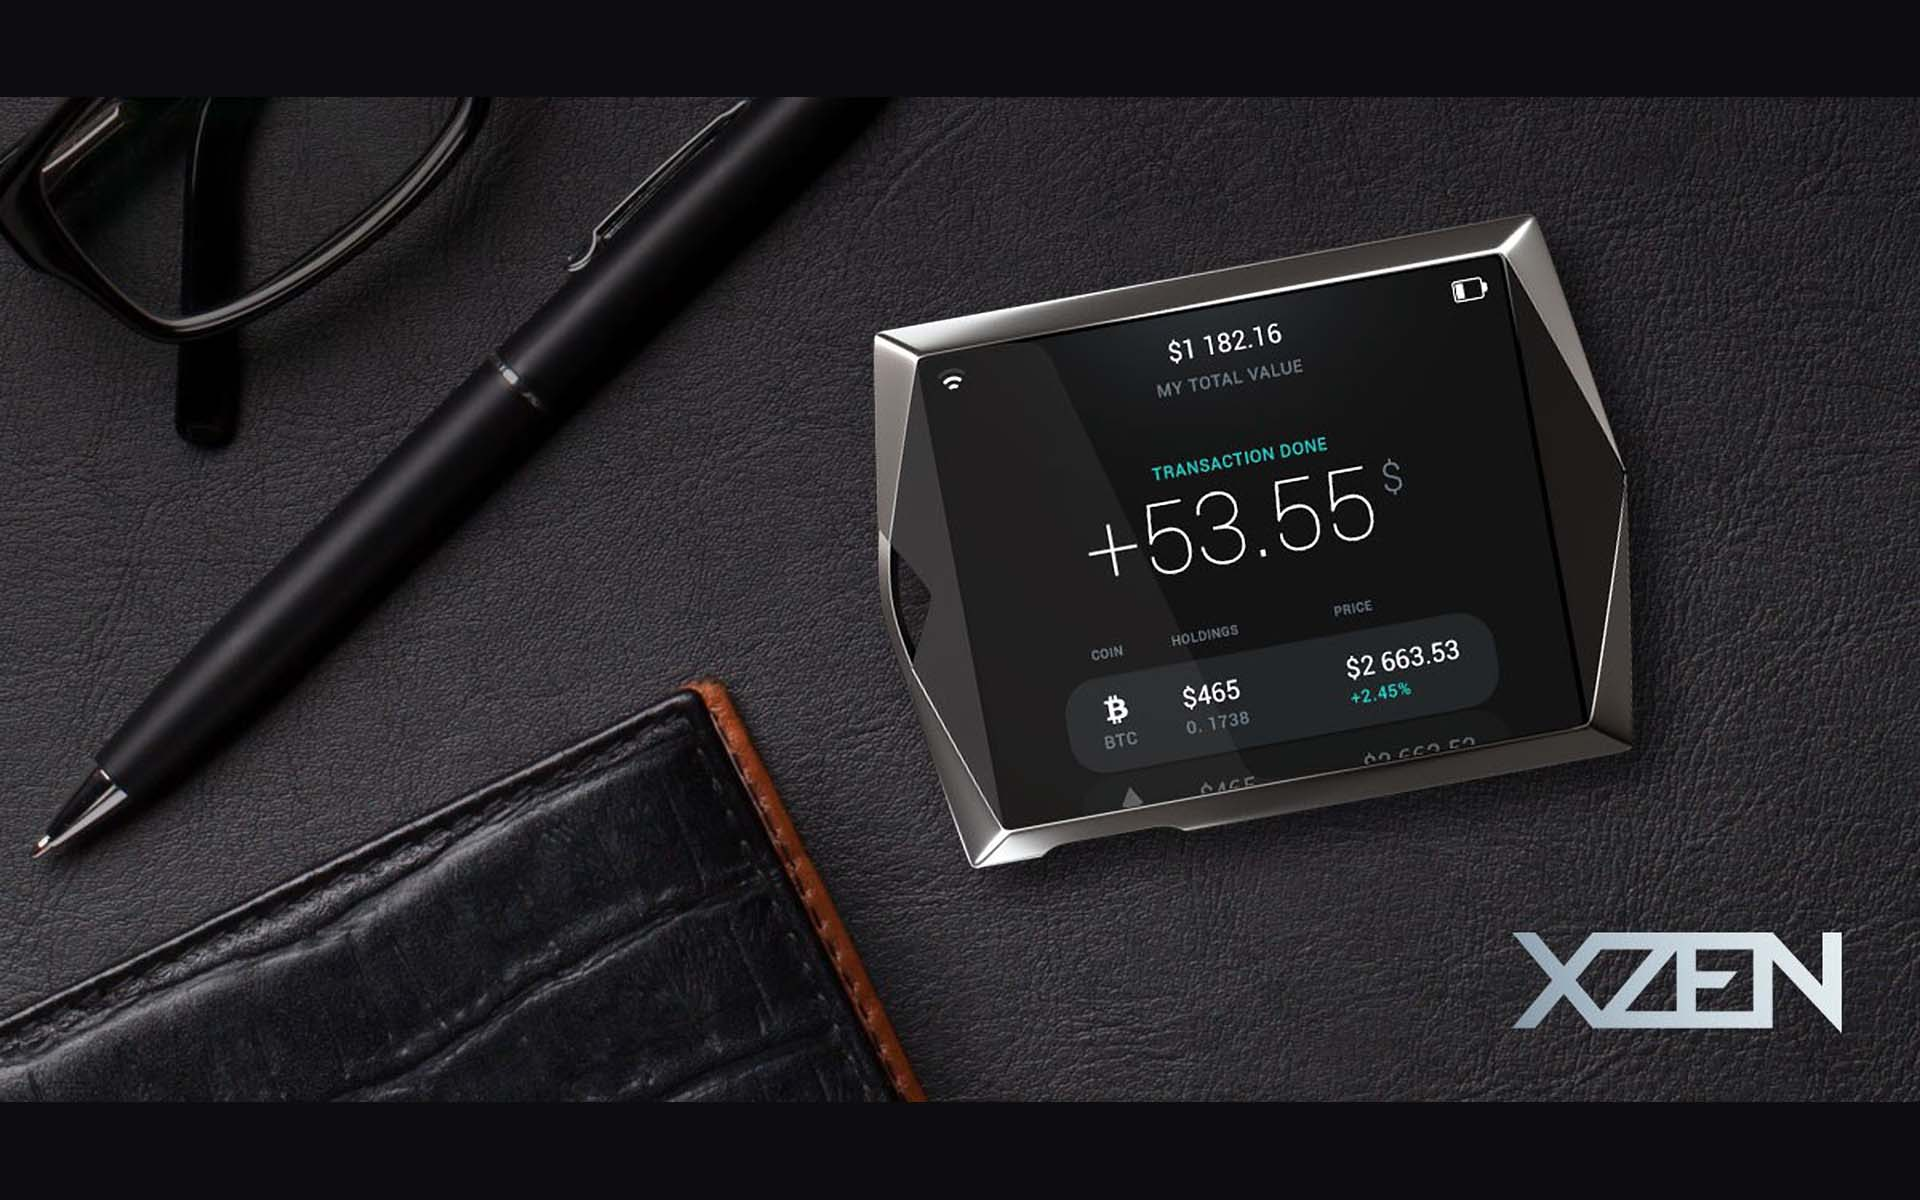 Startup XZEN Presents a Next-Generation Hardware Crypto Wallet